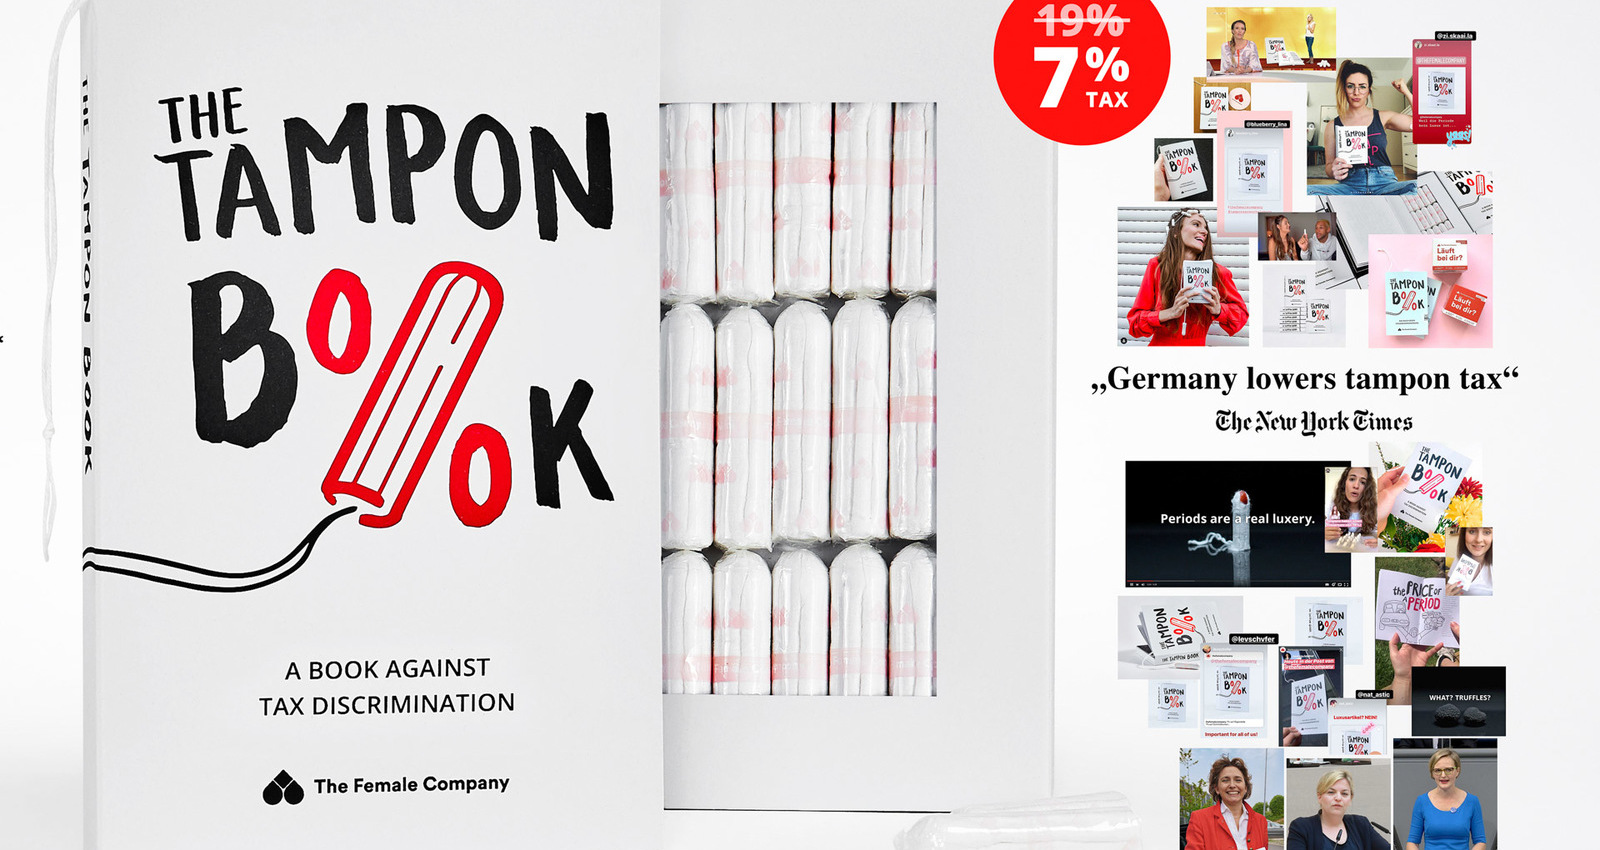 The Tampon Book: a book against tax discrimination